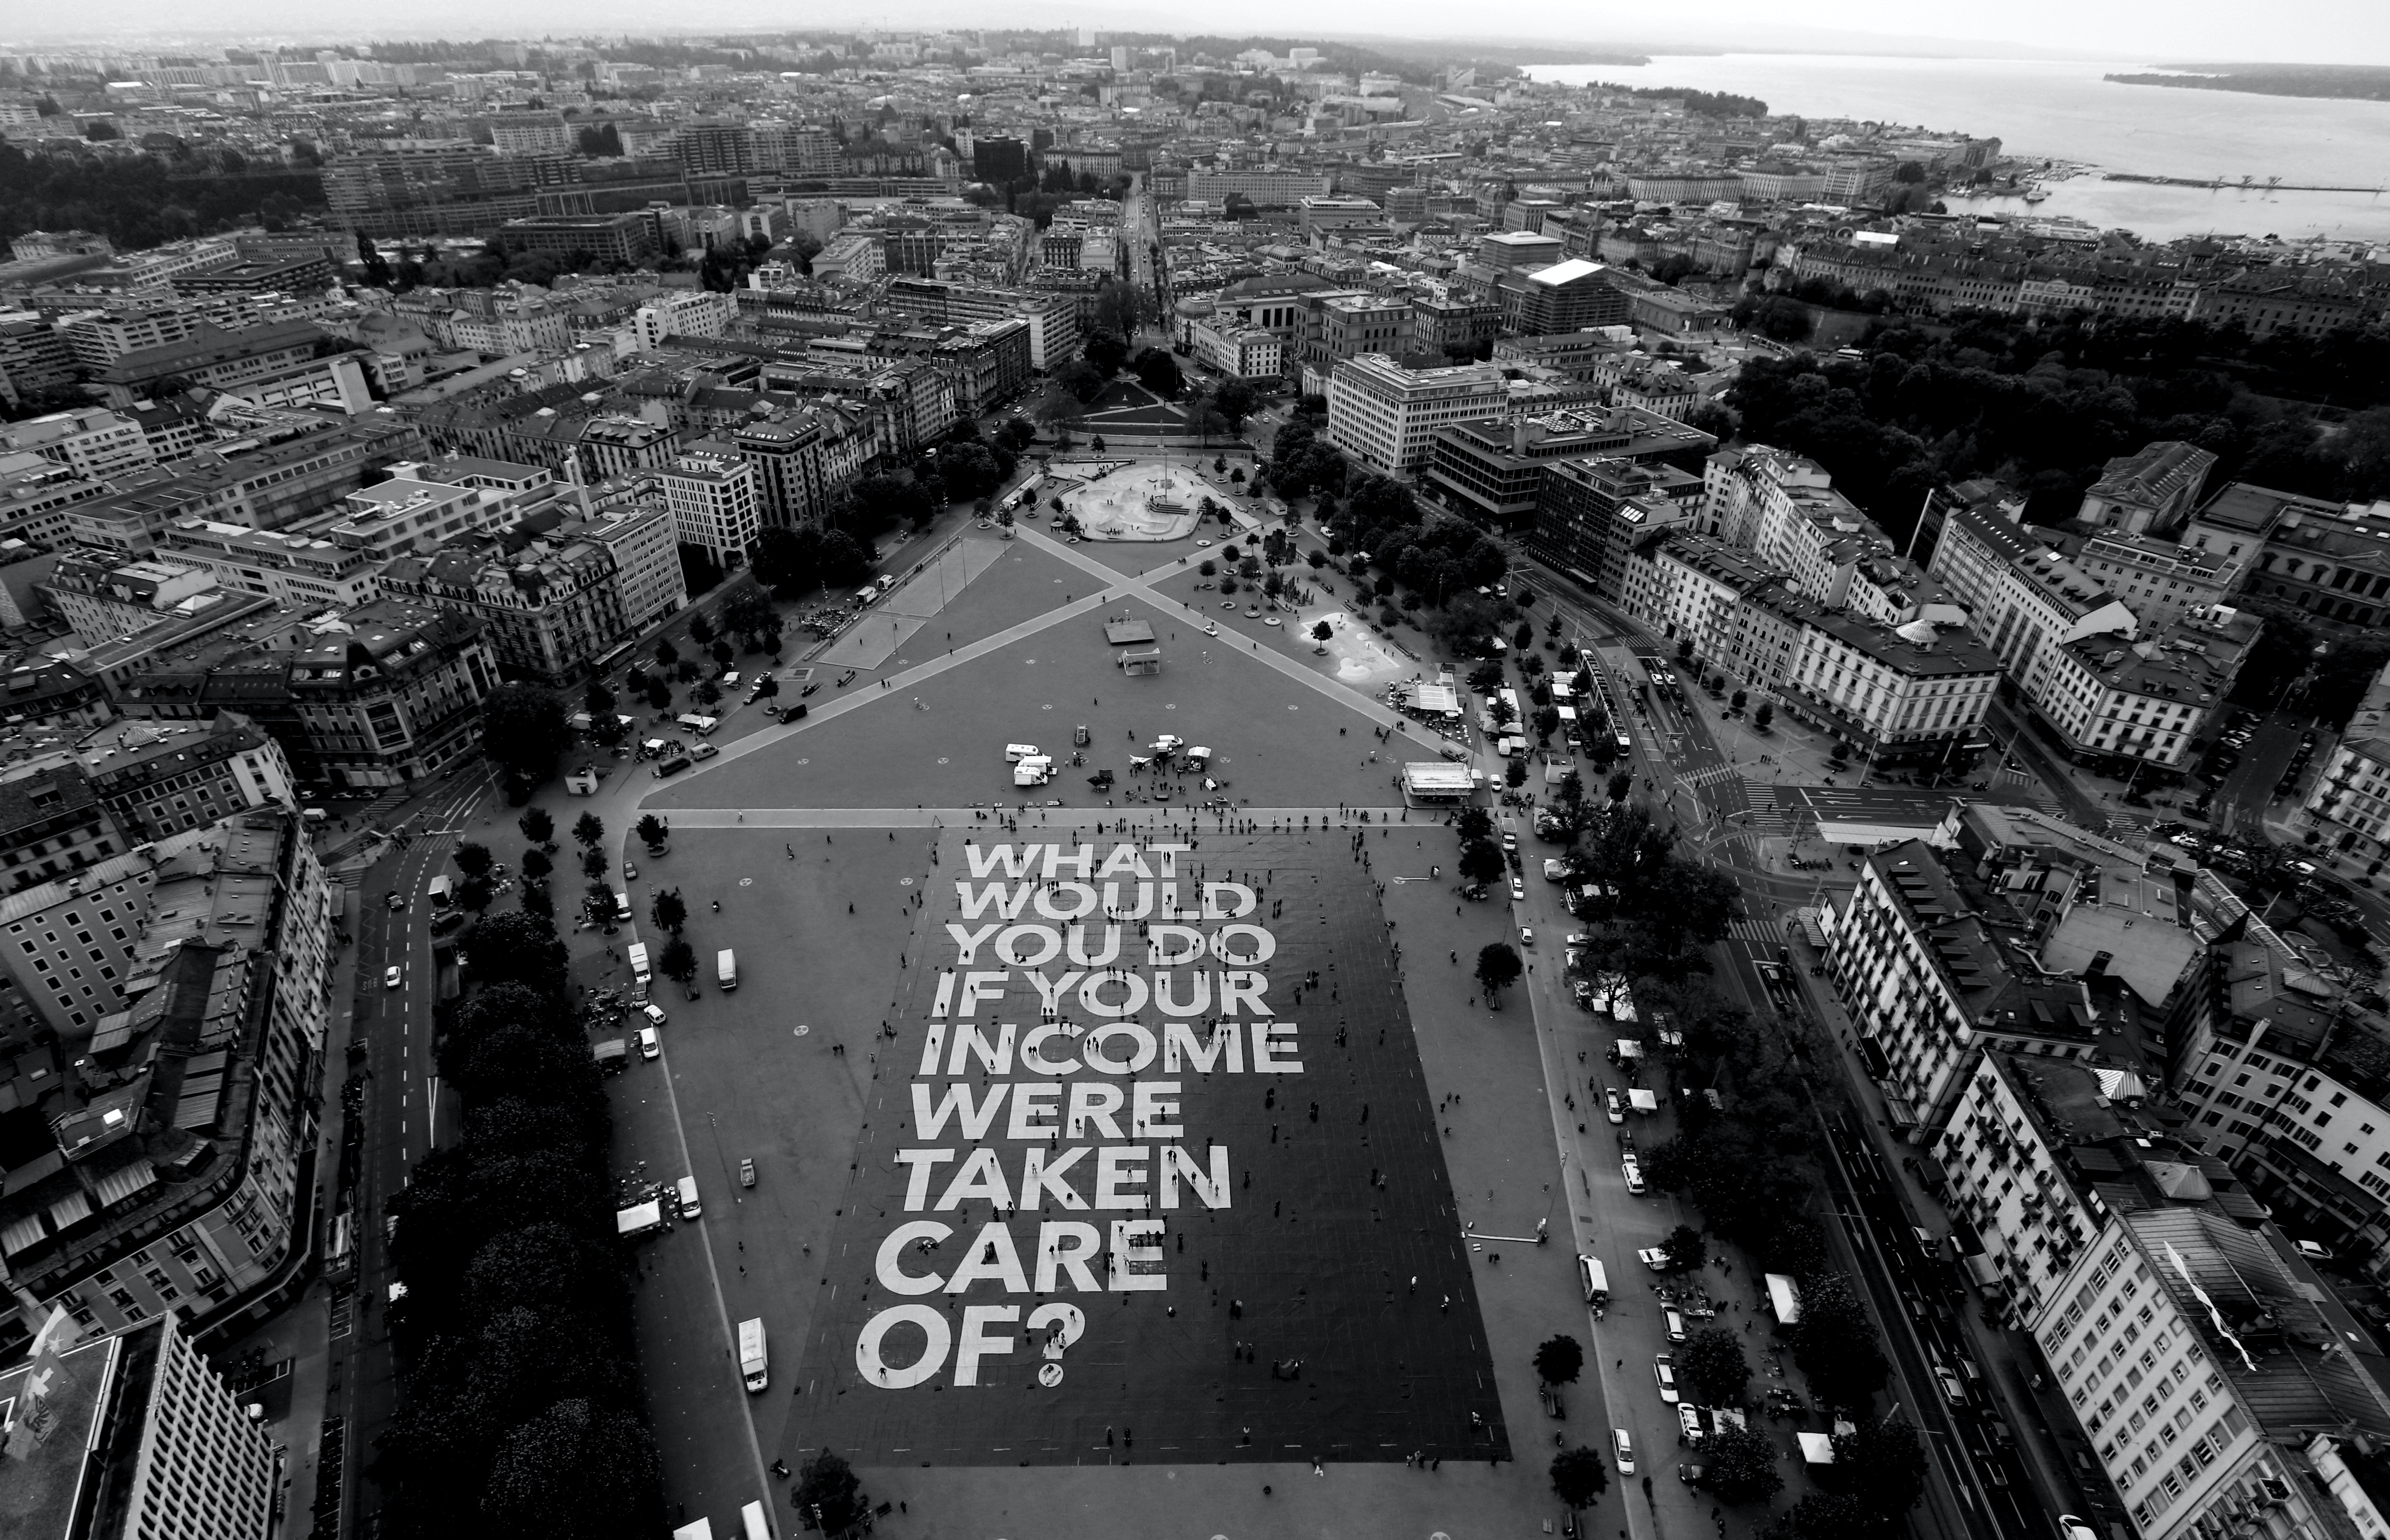 """Image of city square with giant poster on ground that reads """"What would you do if your income were taken care of?"""""""